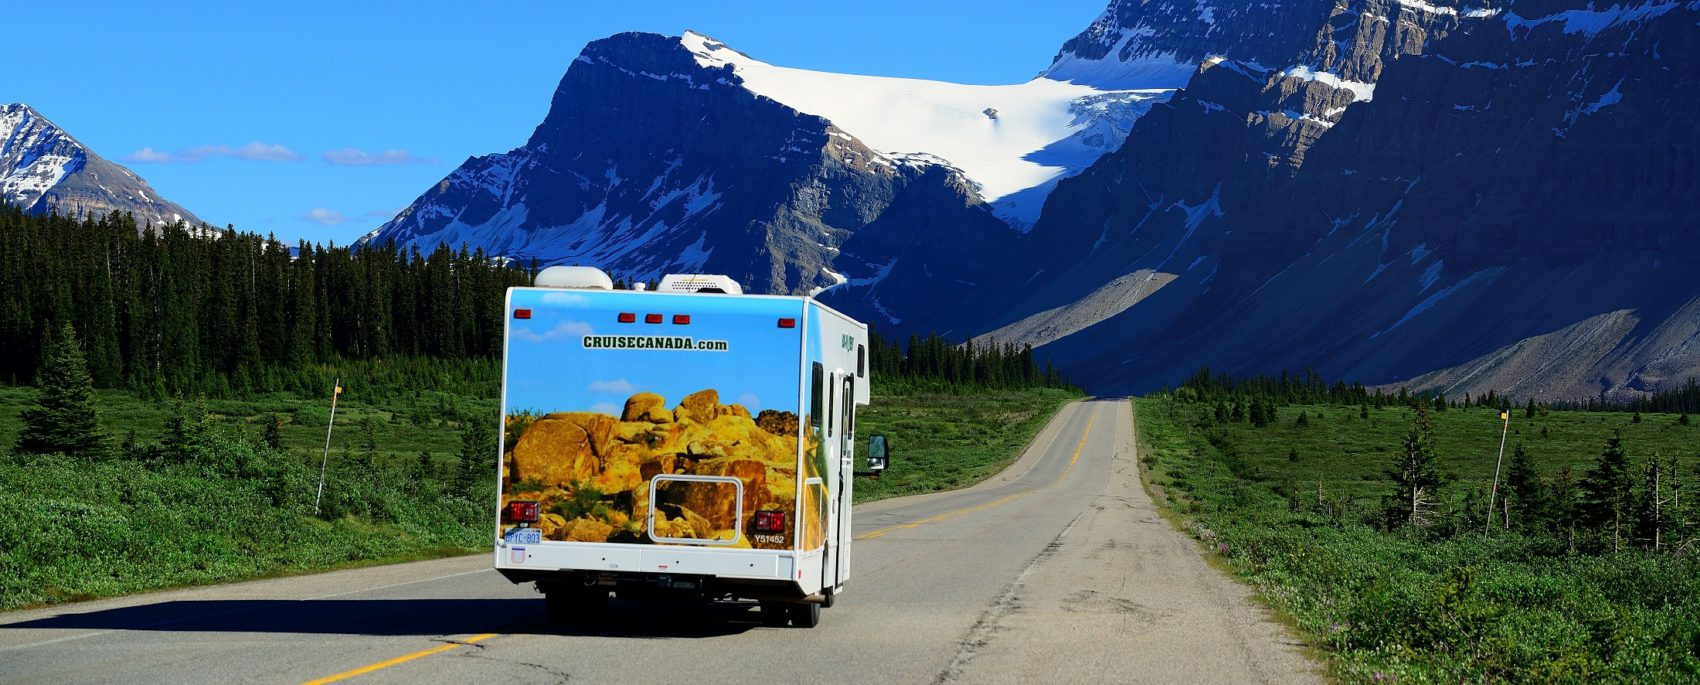 Motorhome in the Canadian Rockies